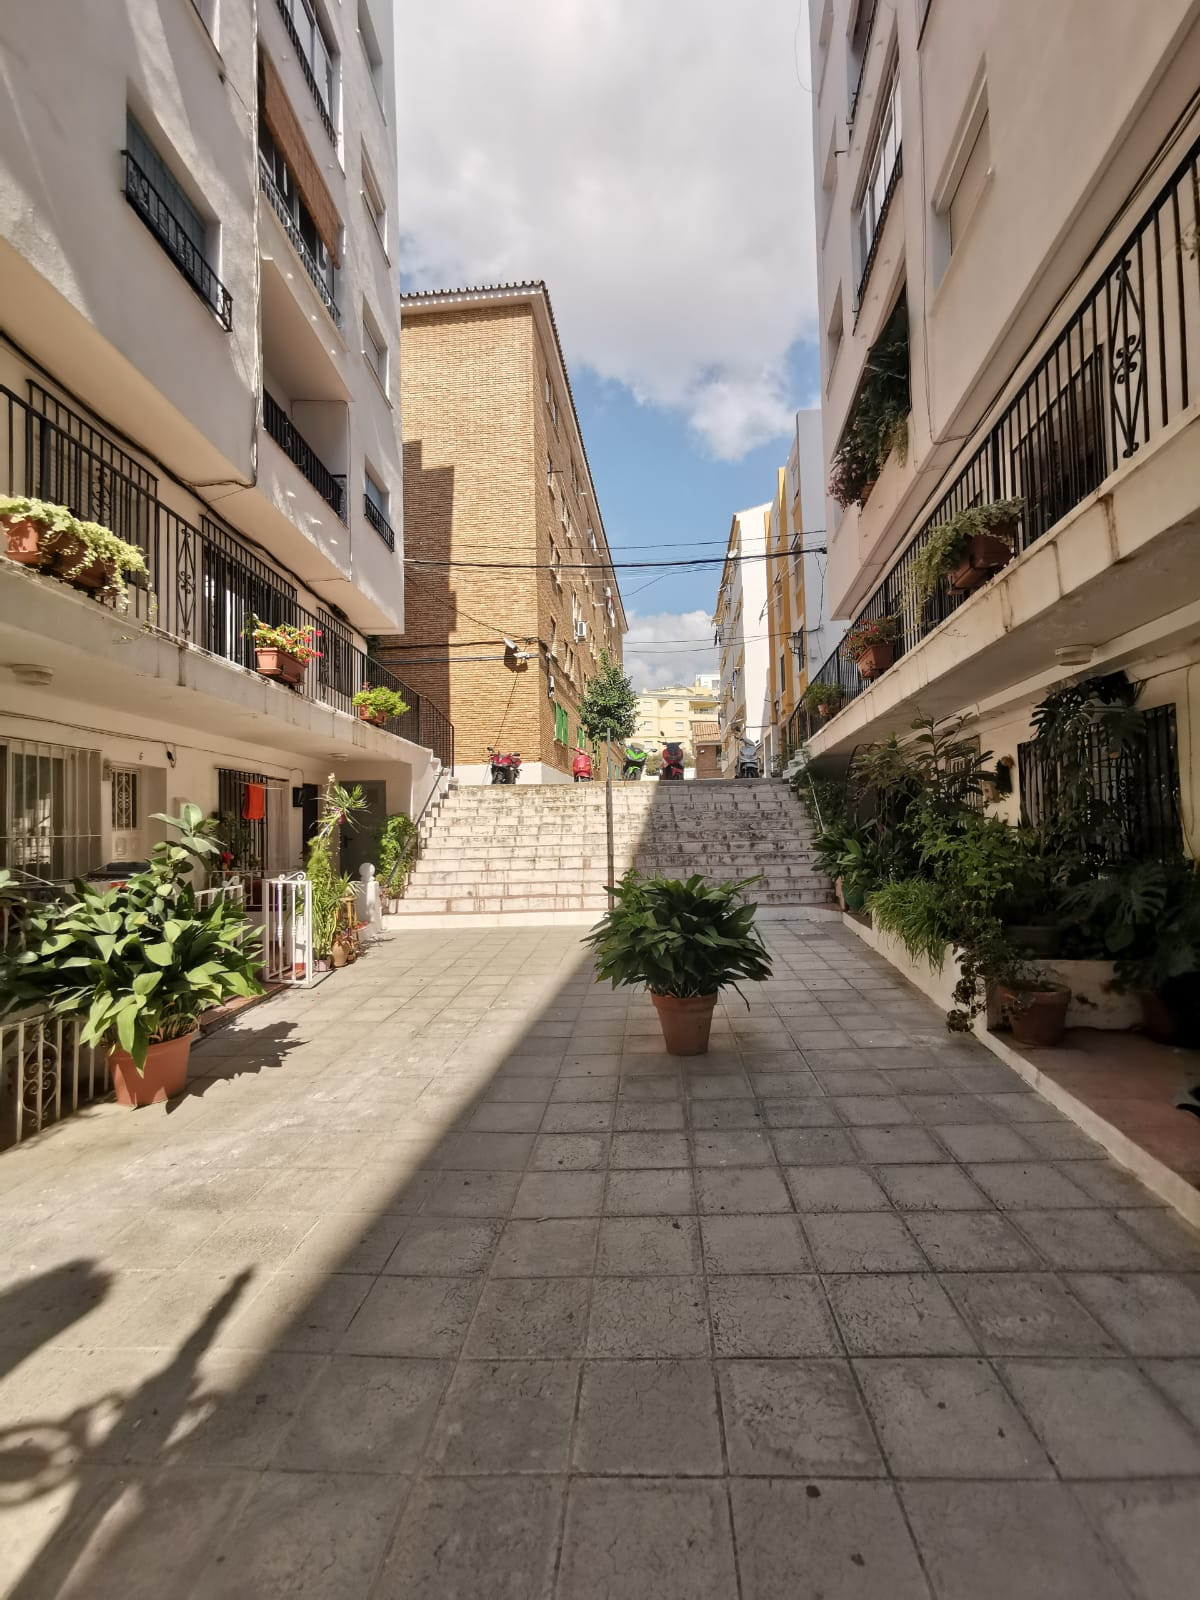 Great opportunity to start your business in Marbella!  Local with many possibilities in the old town, Spain